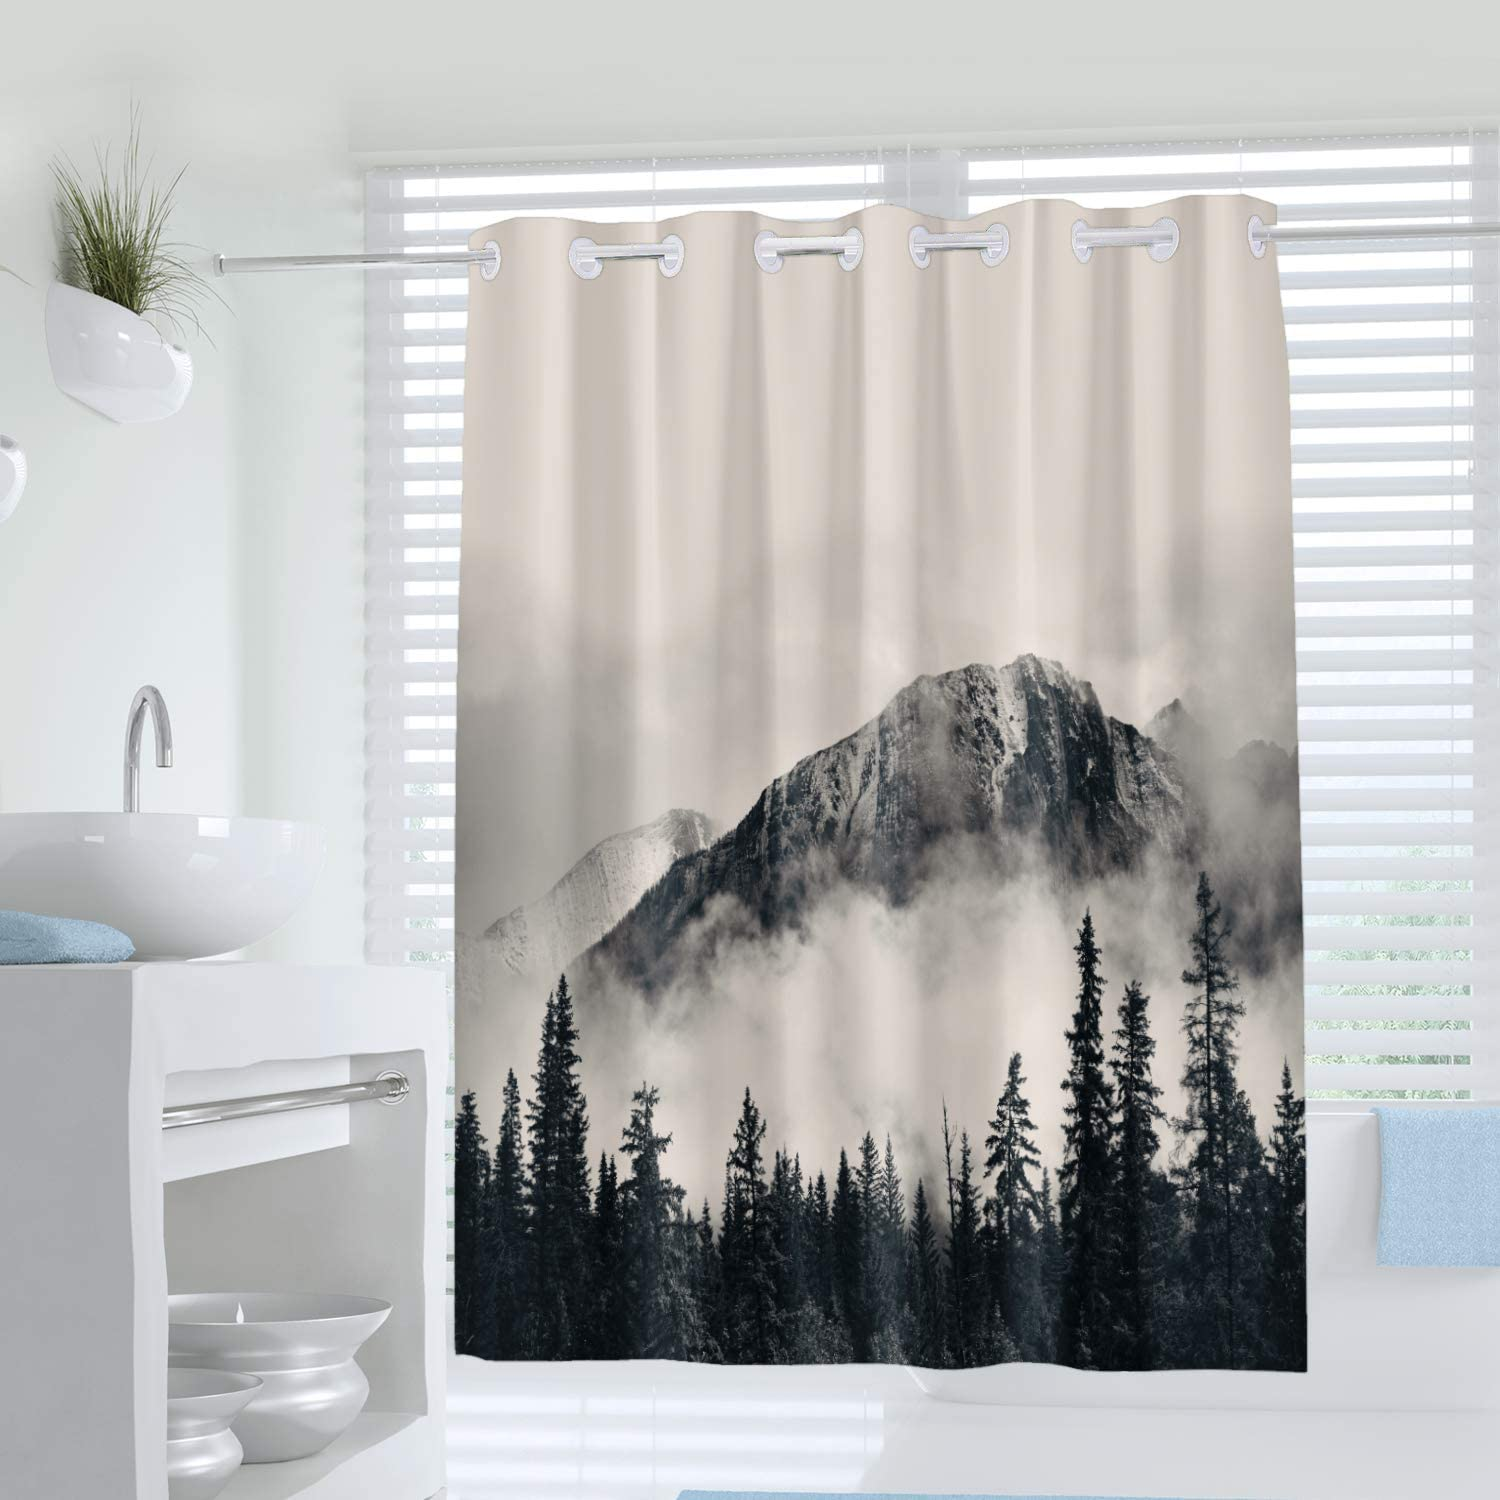 Abstract Art No Hook Shower Curtain, National Park Foggy Mountains and Forest Print Curtain for Bathroom Decor,Waterproof Fabric Bathtub Showers 72 x 78 Inches,Grey